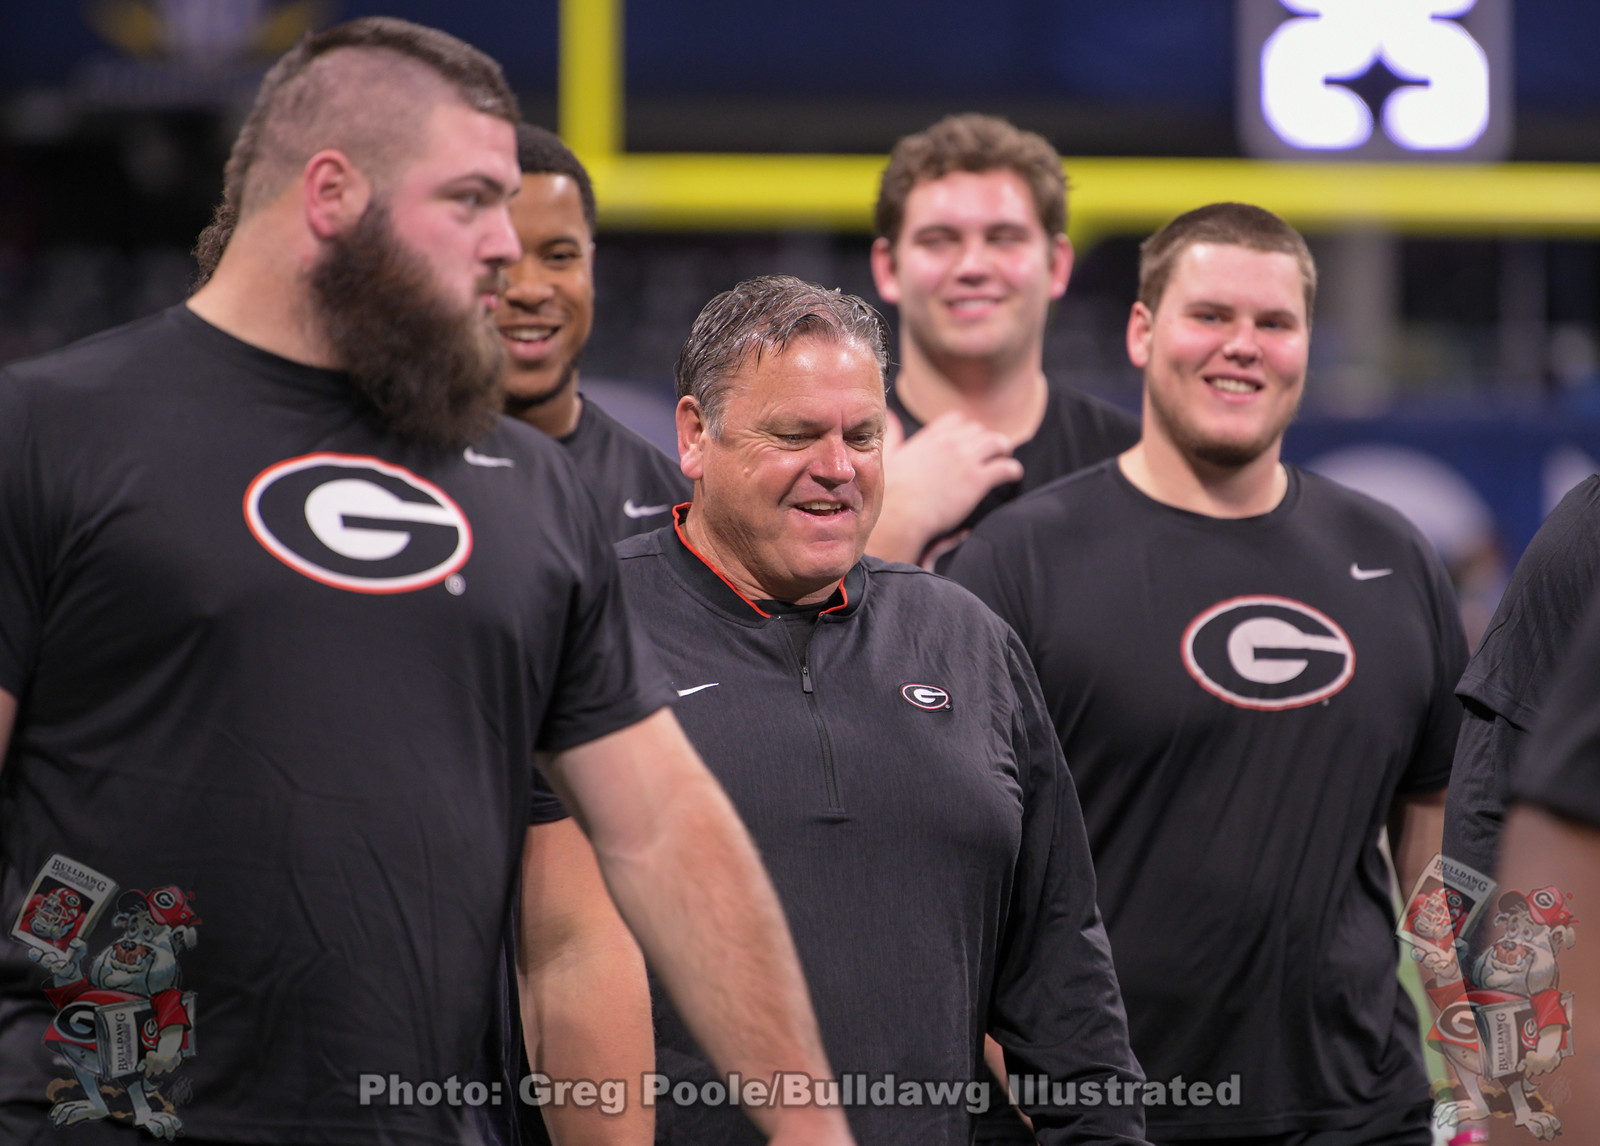 UGA assistant coach Sam Pittman with members of his offensive line during Friday's team walk-through of Mercedes-Benz Stadium, December 6, 2019